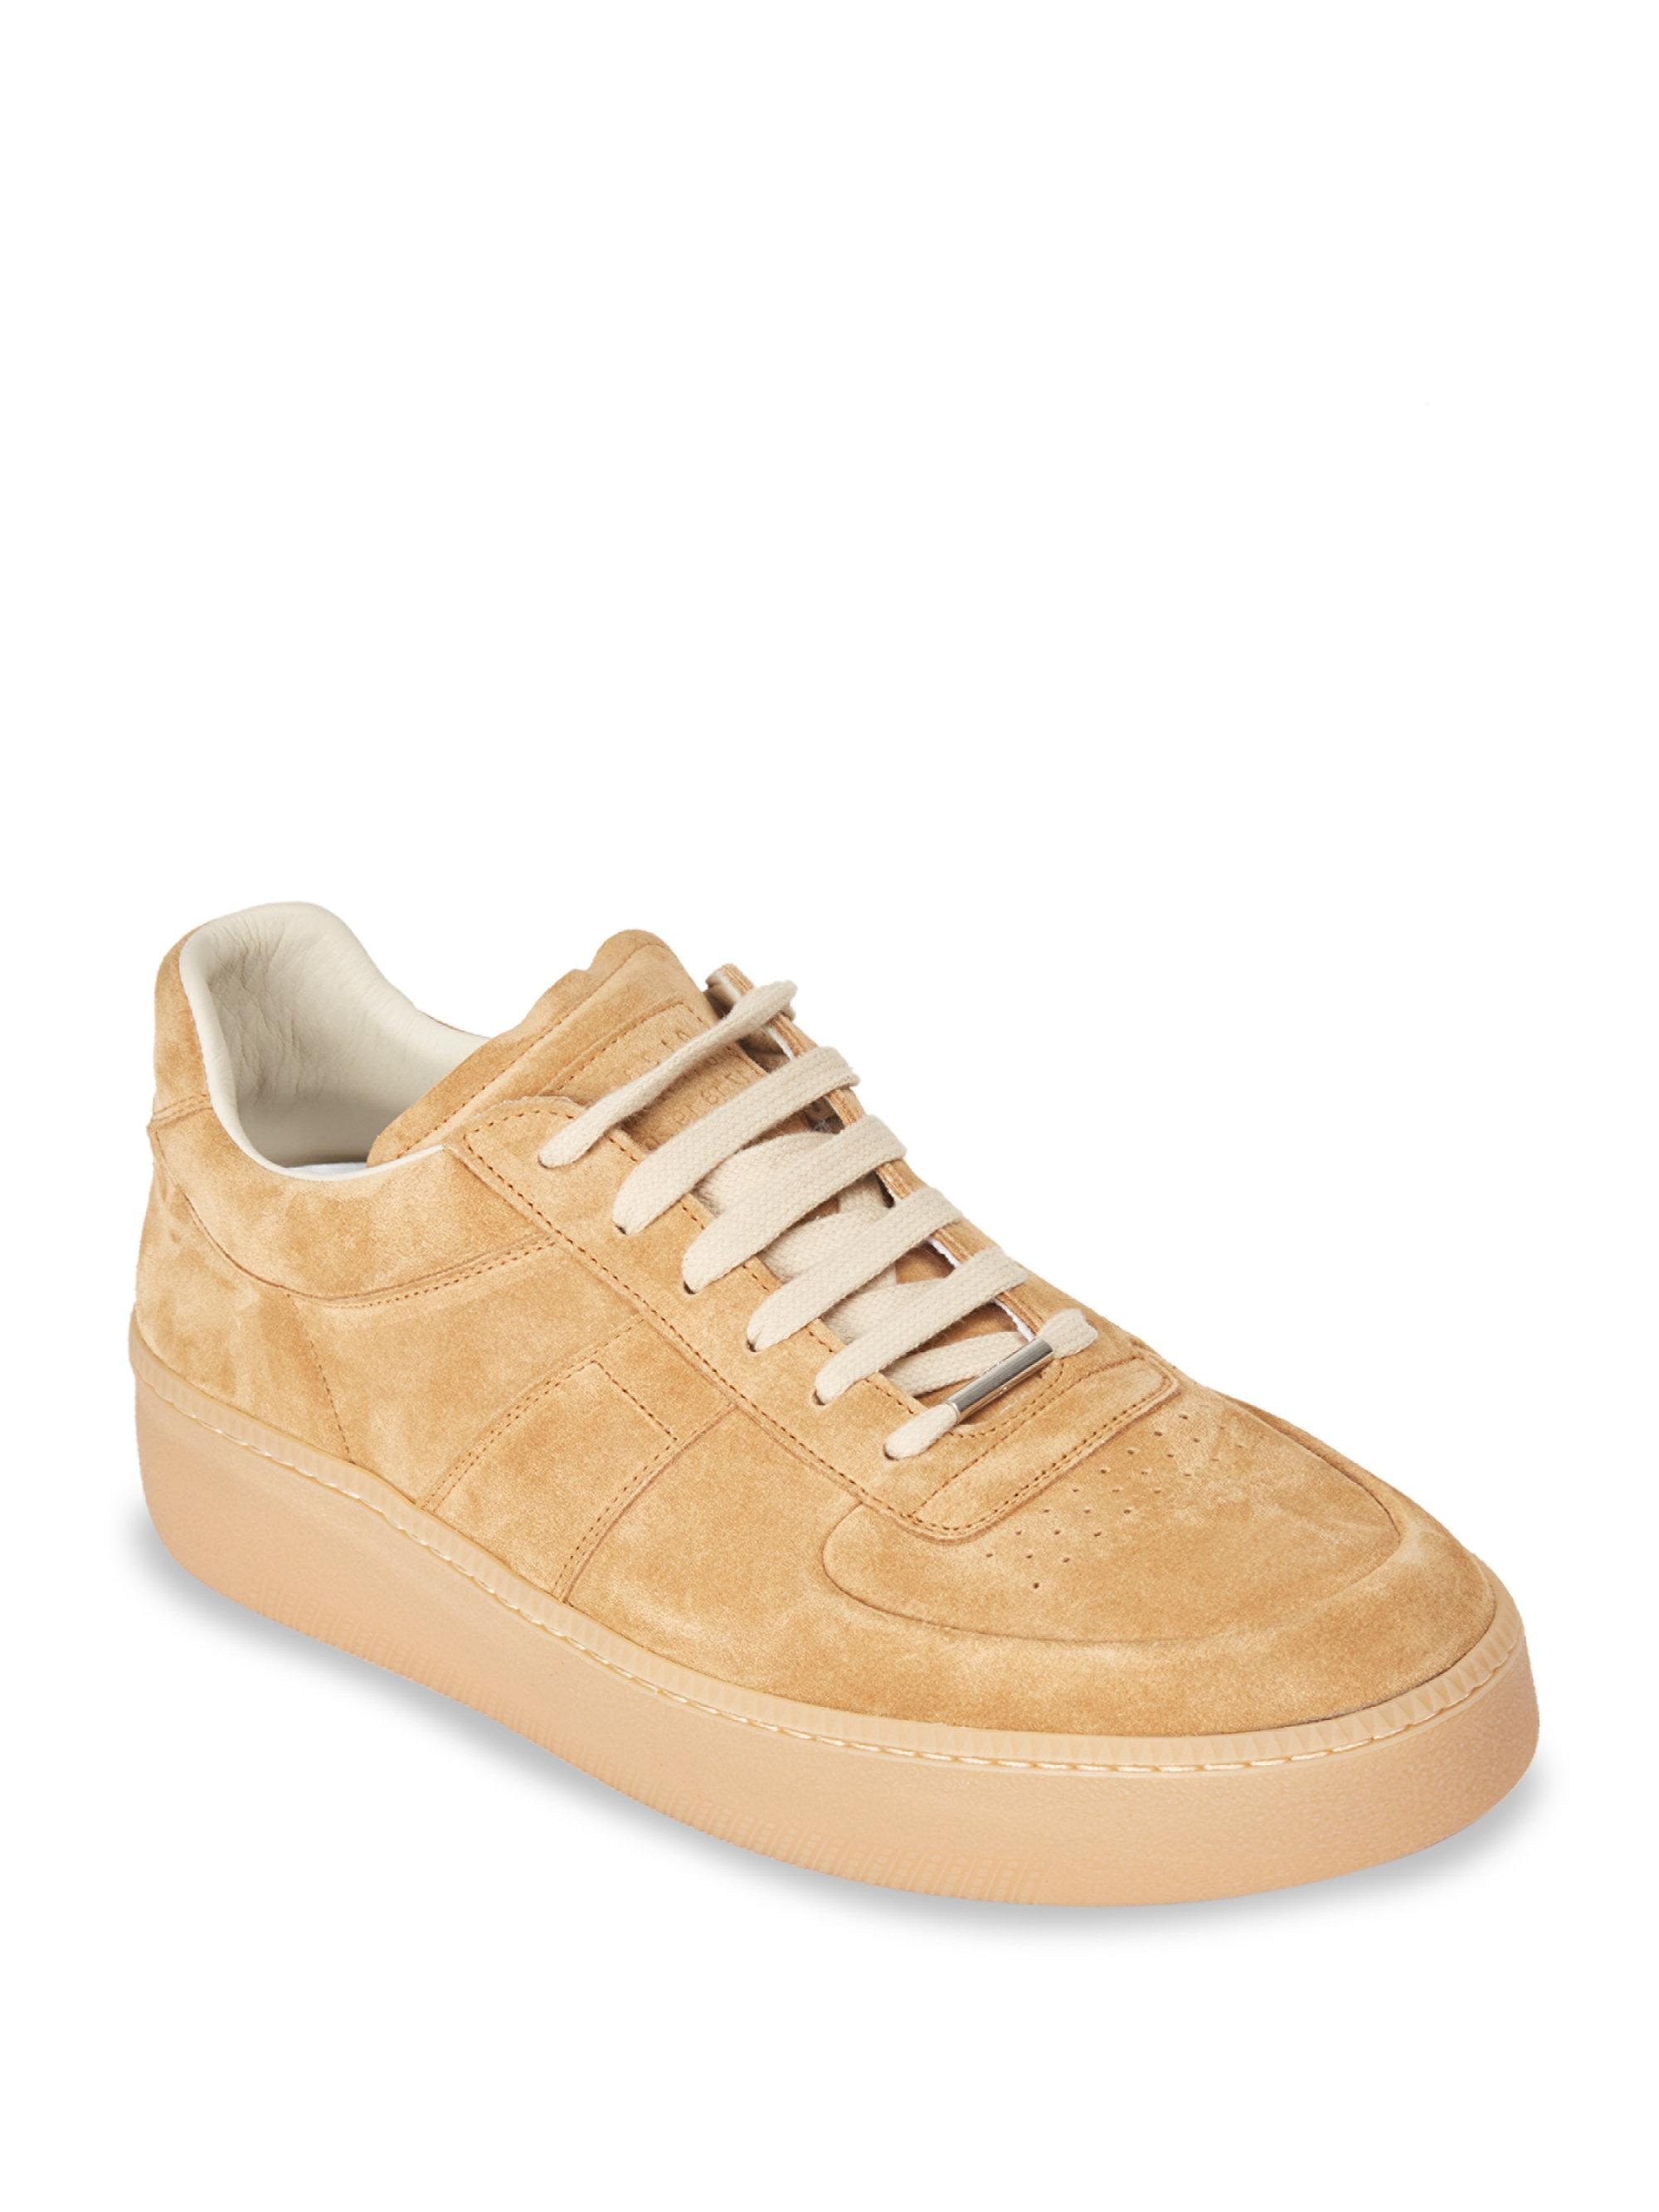 Maison Margiela Suede Low Top Sneakers w/ Tags many kinds of online 33fJ91T